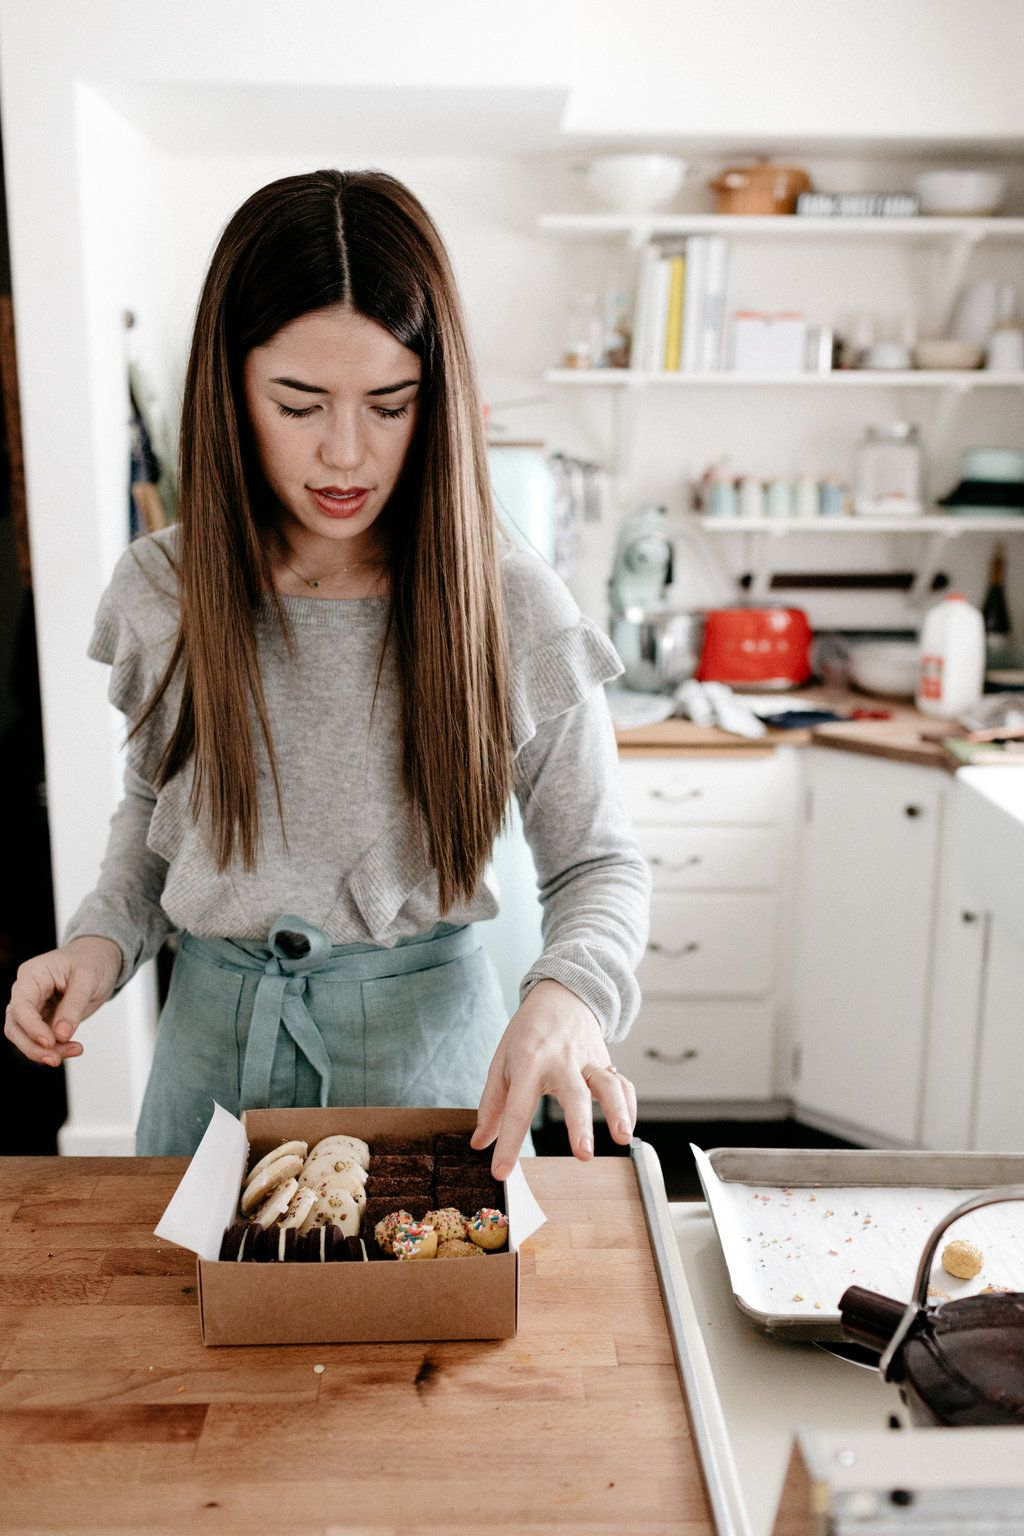 molly yeh my name is yeh east grand forks mn food blogs websites pinterest molly yeh. Black Bedroom Furniture Sets. Home Design Ideas